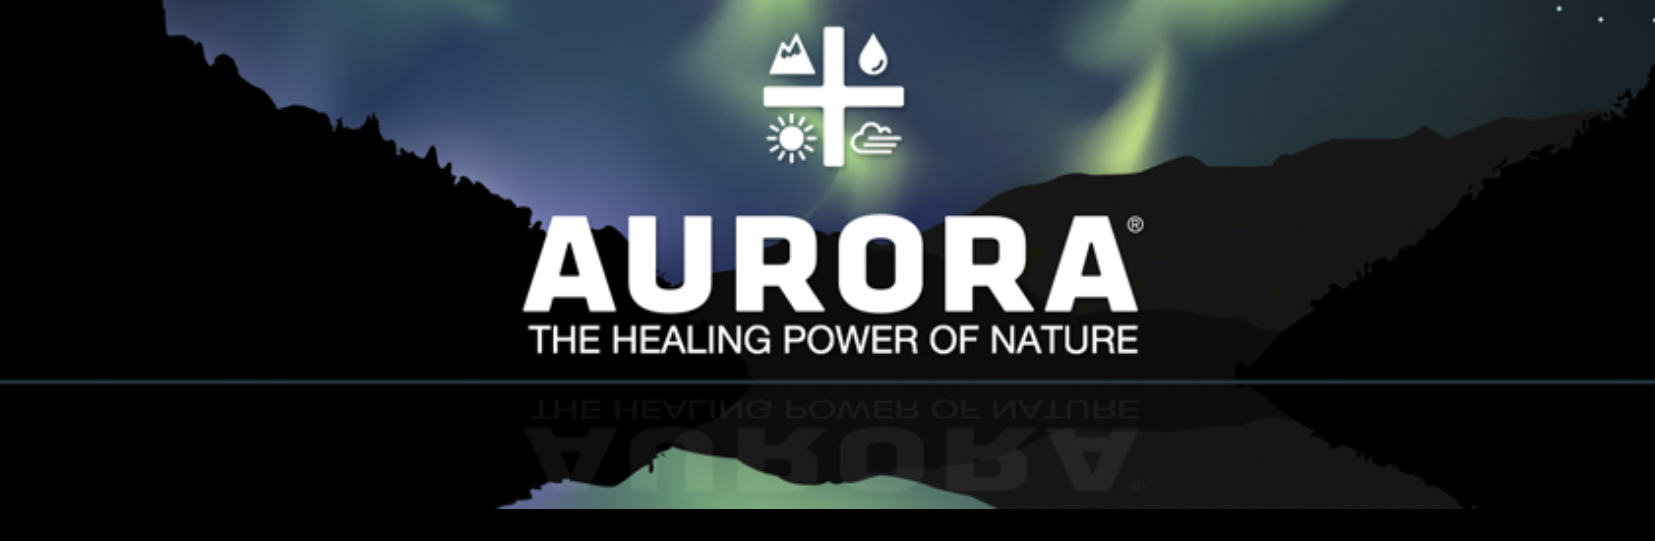 Aurora Facebook Cover